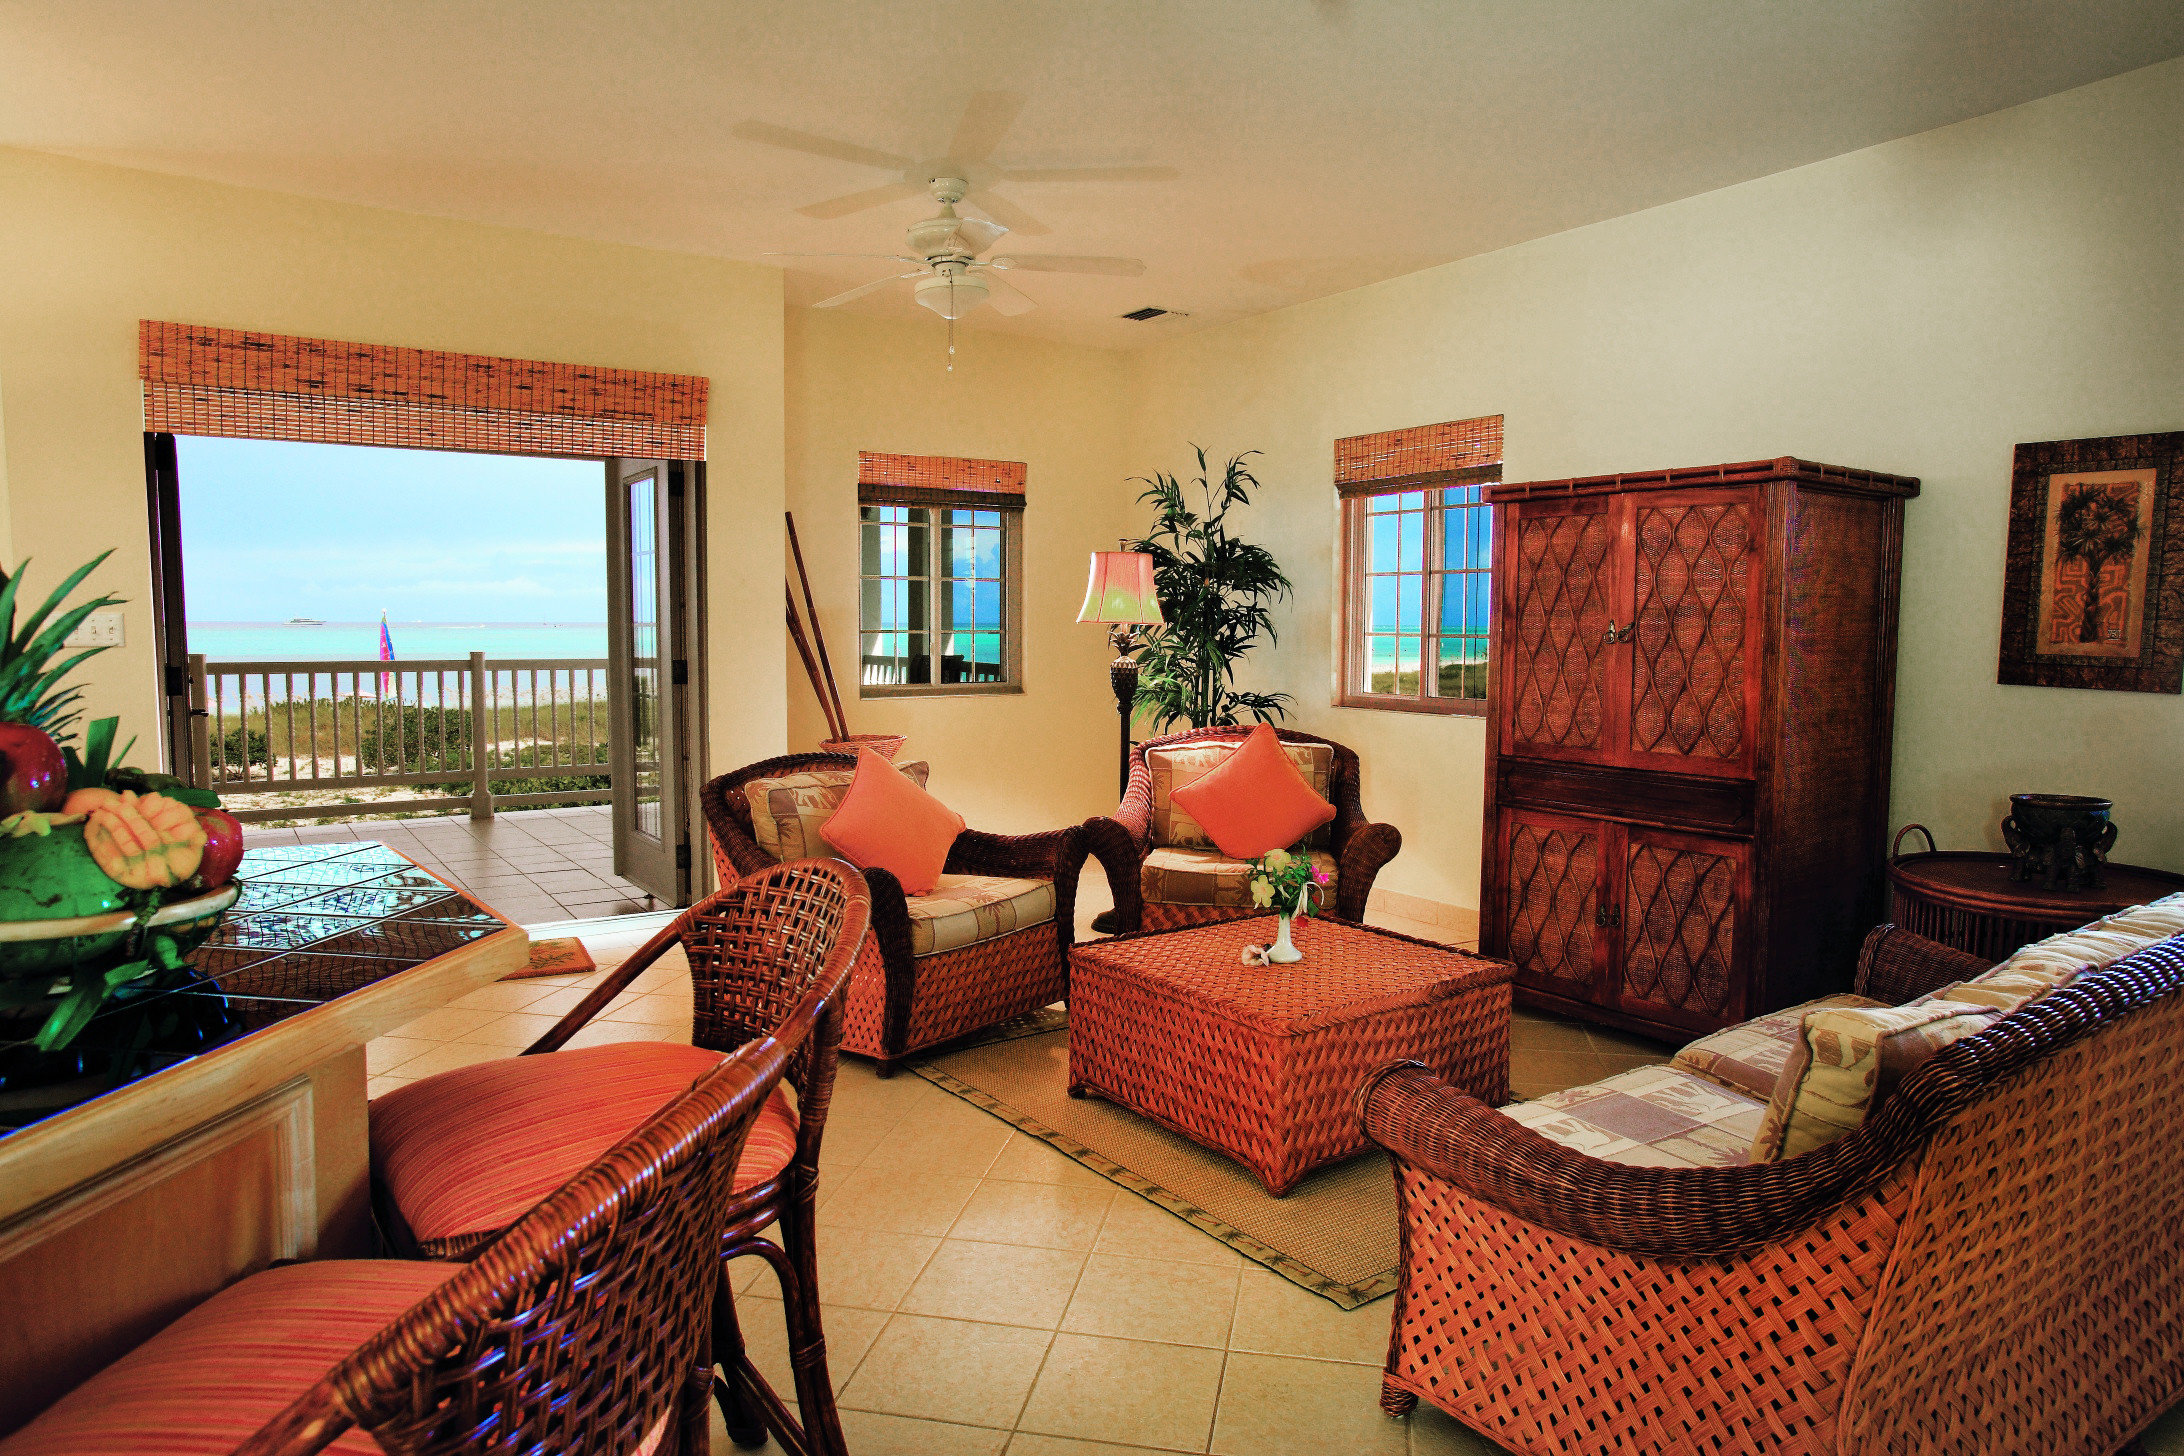 Lounge Luxury Romantic Scenic views property living room home Villa red Suite cottage condominium Resort Bedroom